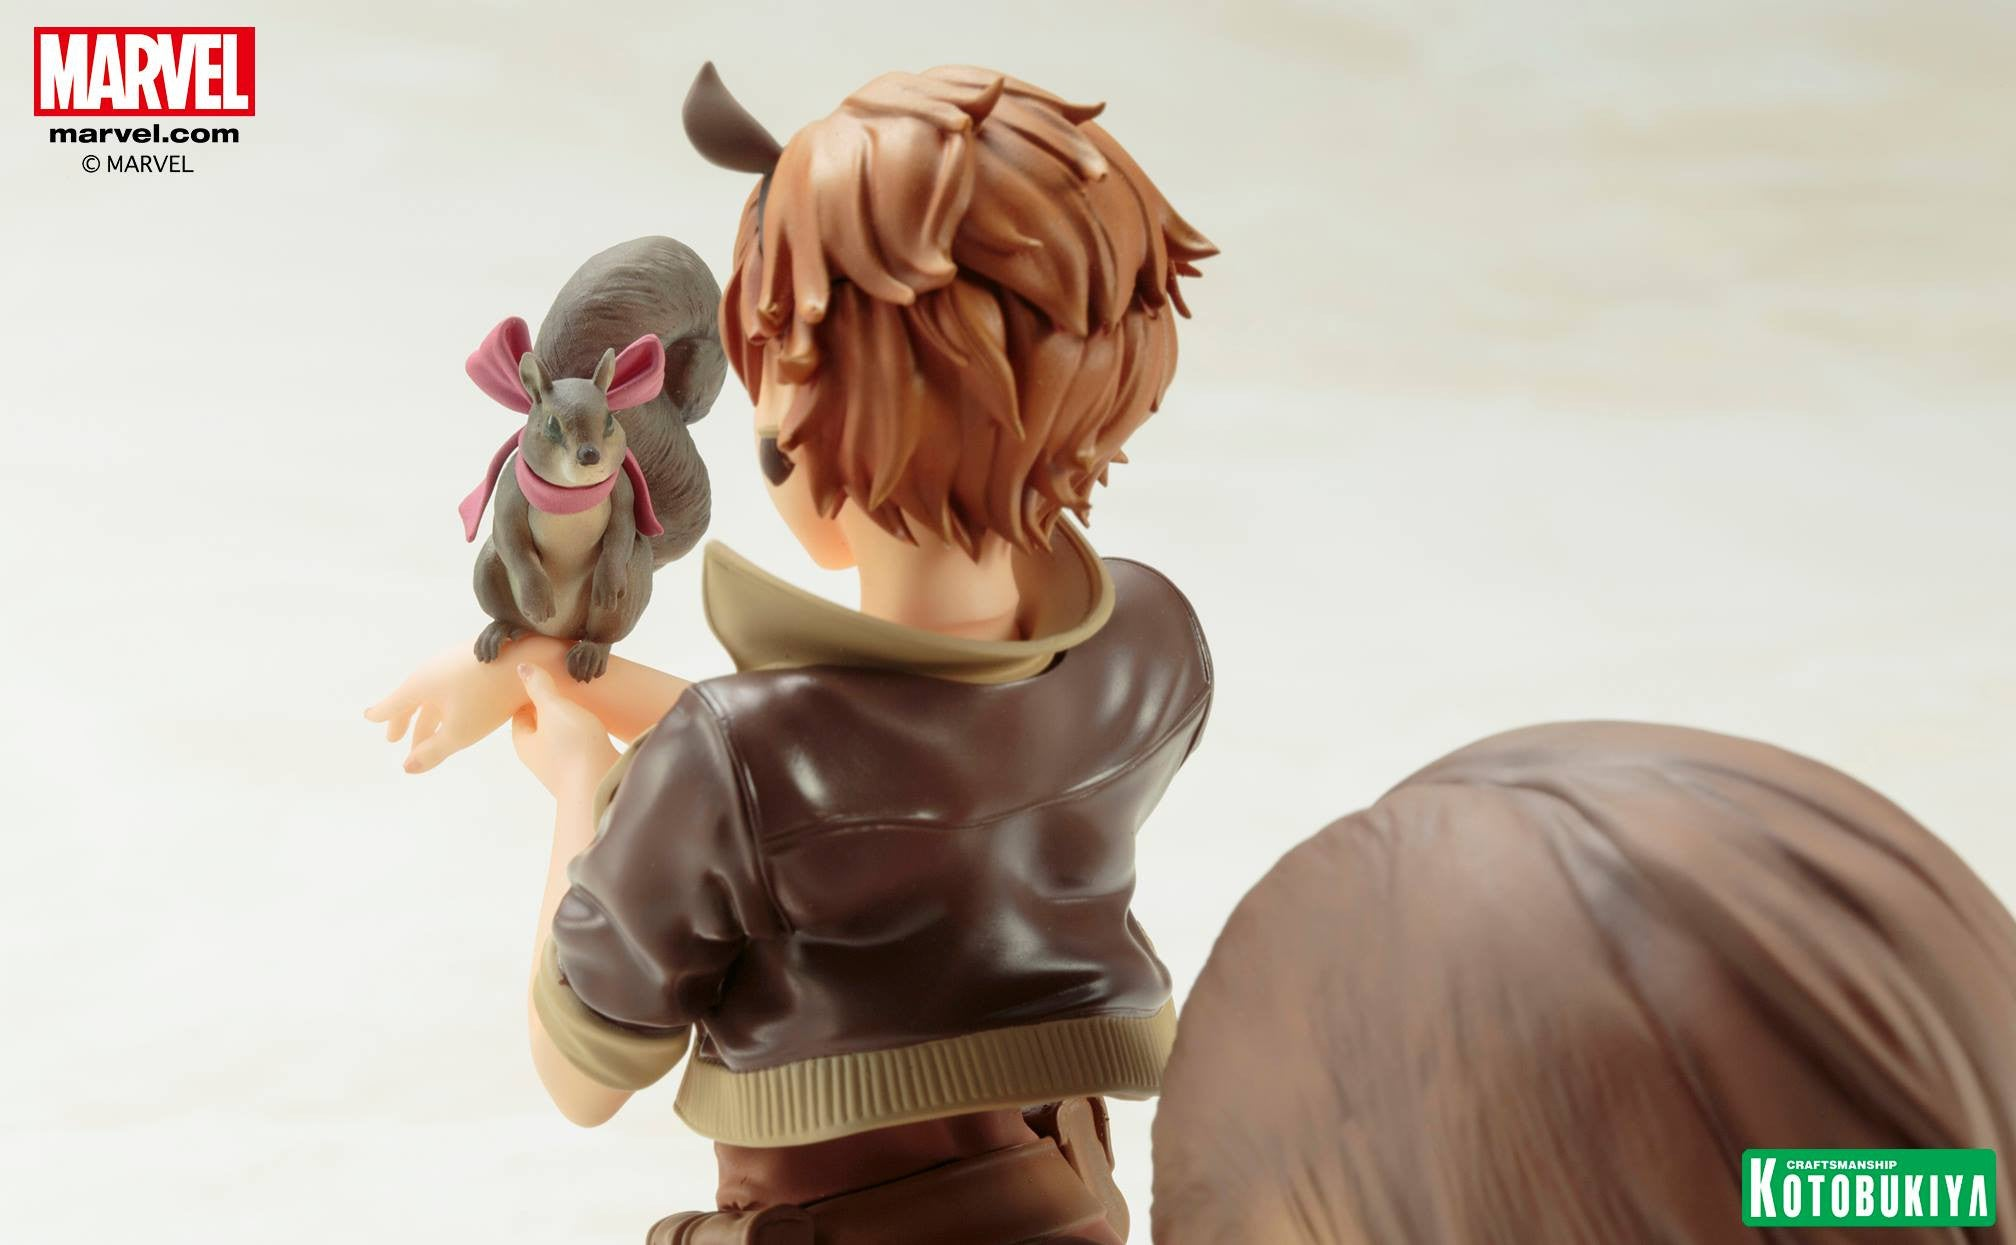 Kotobukiya - Marvel Bishoujo - Squirrel Girl (1/7 Scale) - Marvelous Toys - 8